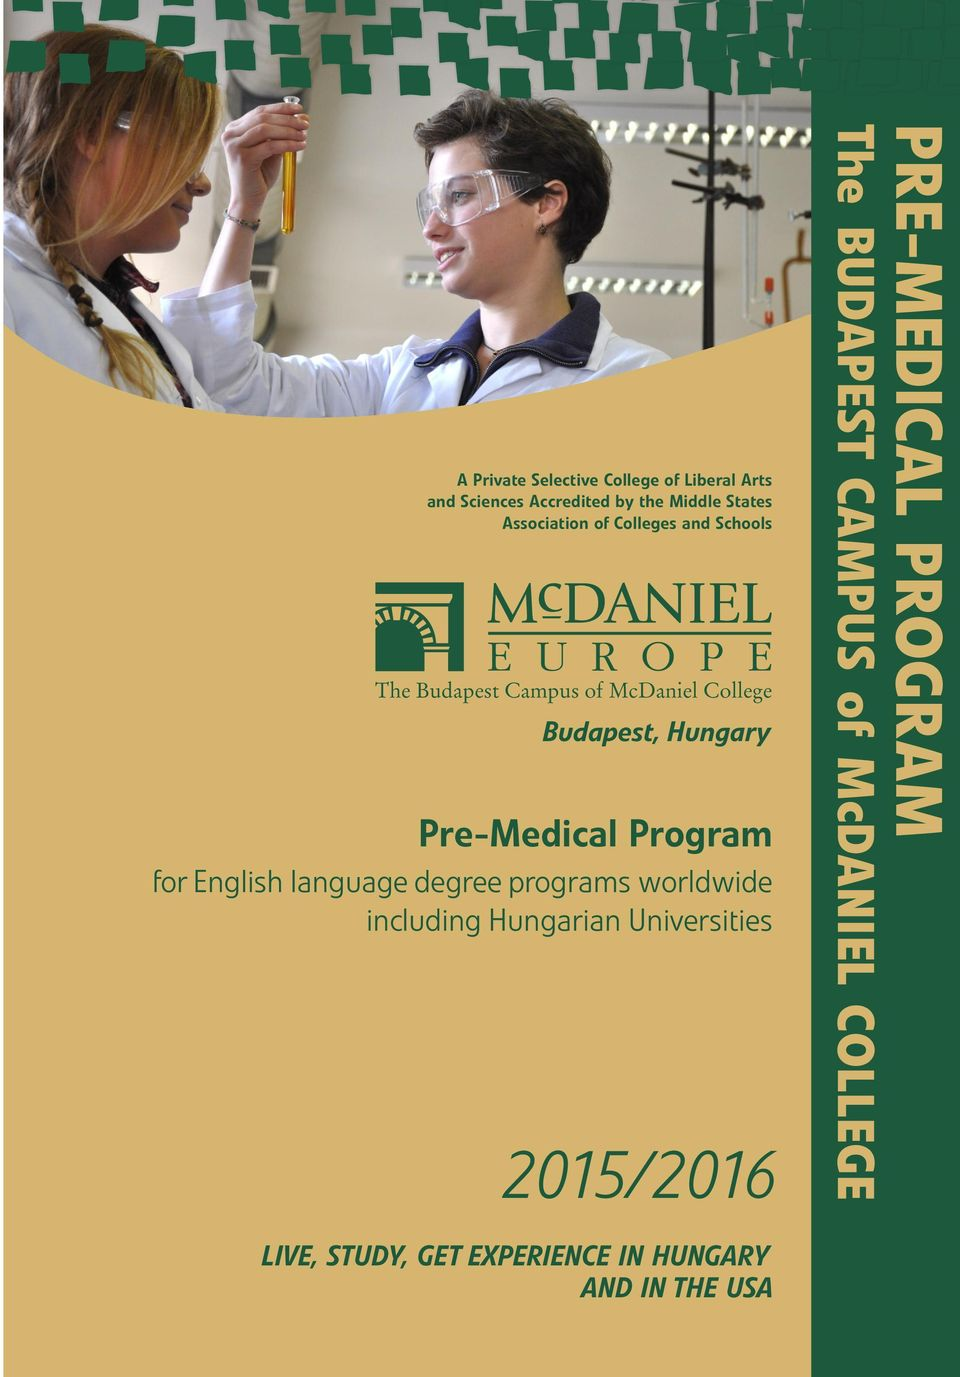 for English language degree programs worldwide including Hungarian Universities 2015/2016 PRE-MEDICAL